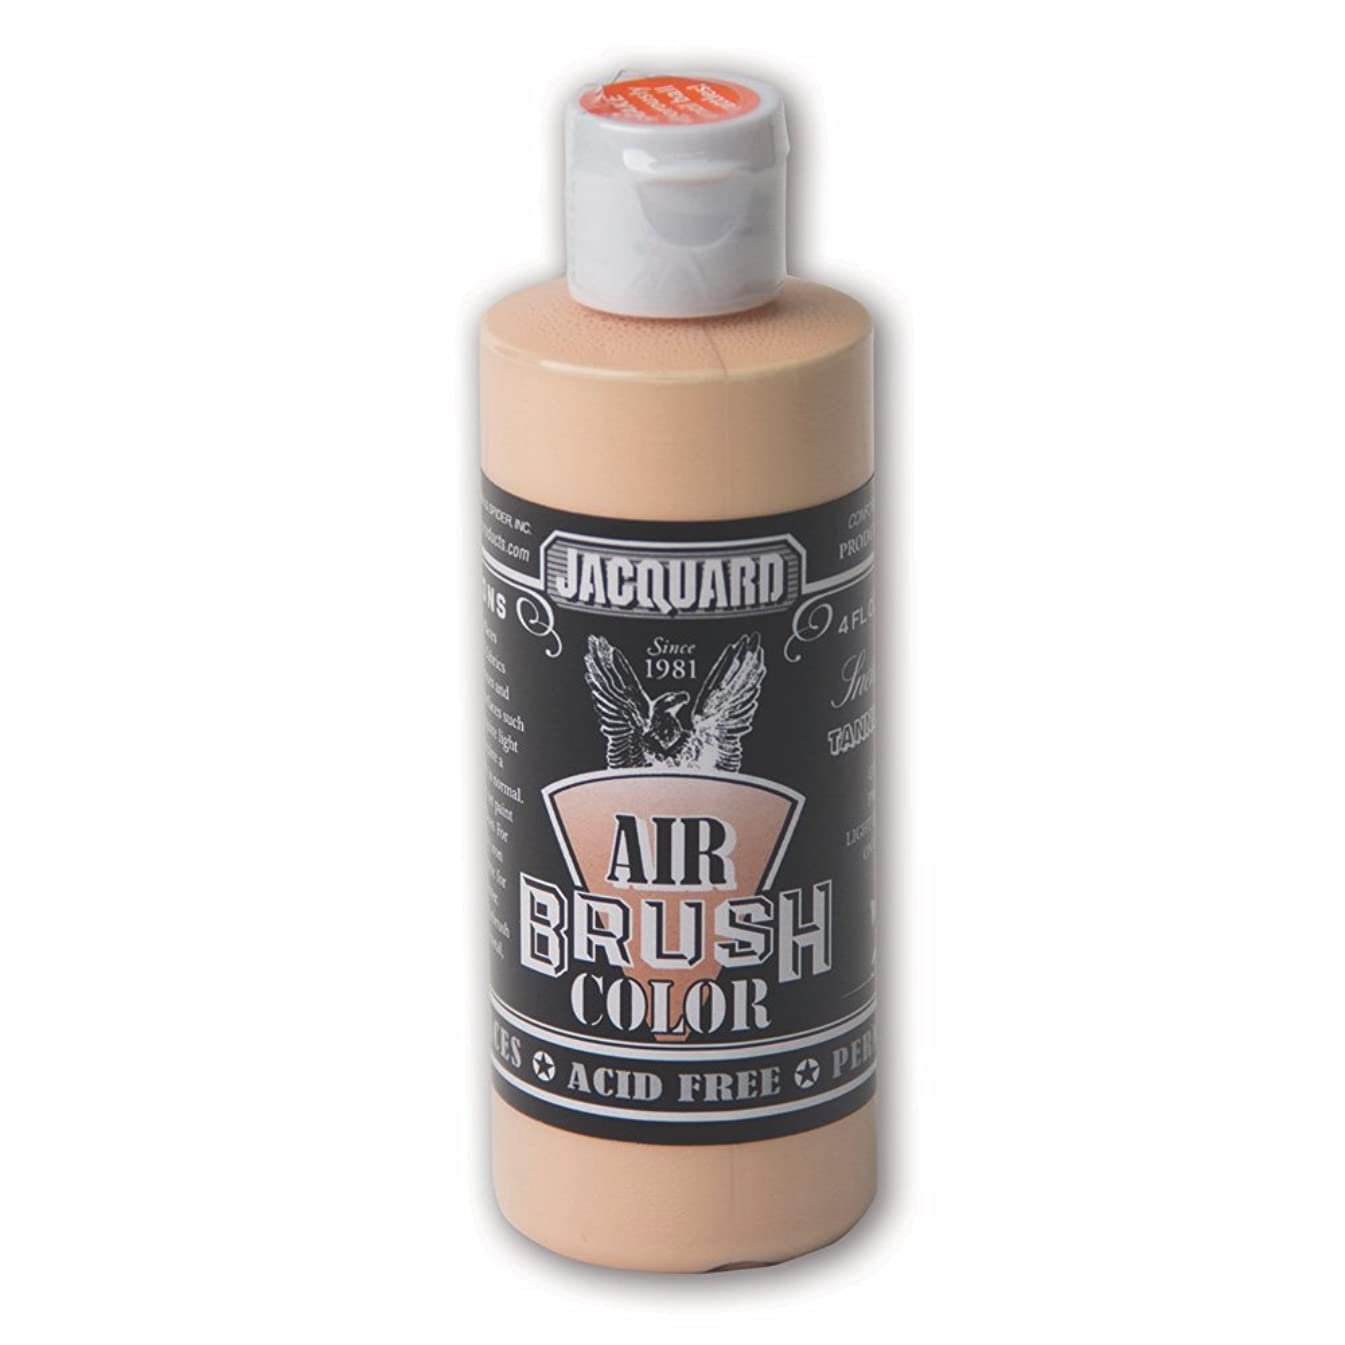 Sneaker Series Airbrush Color by Jacquard, Artist-Grade Fluid Acrylic Paint, Use on Multiple Surfaces, 4 Fluid Ounces, Tanned Leather